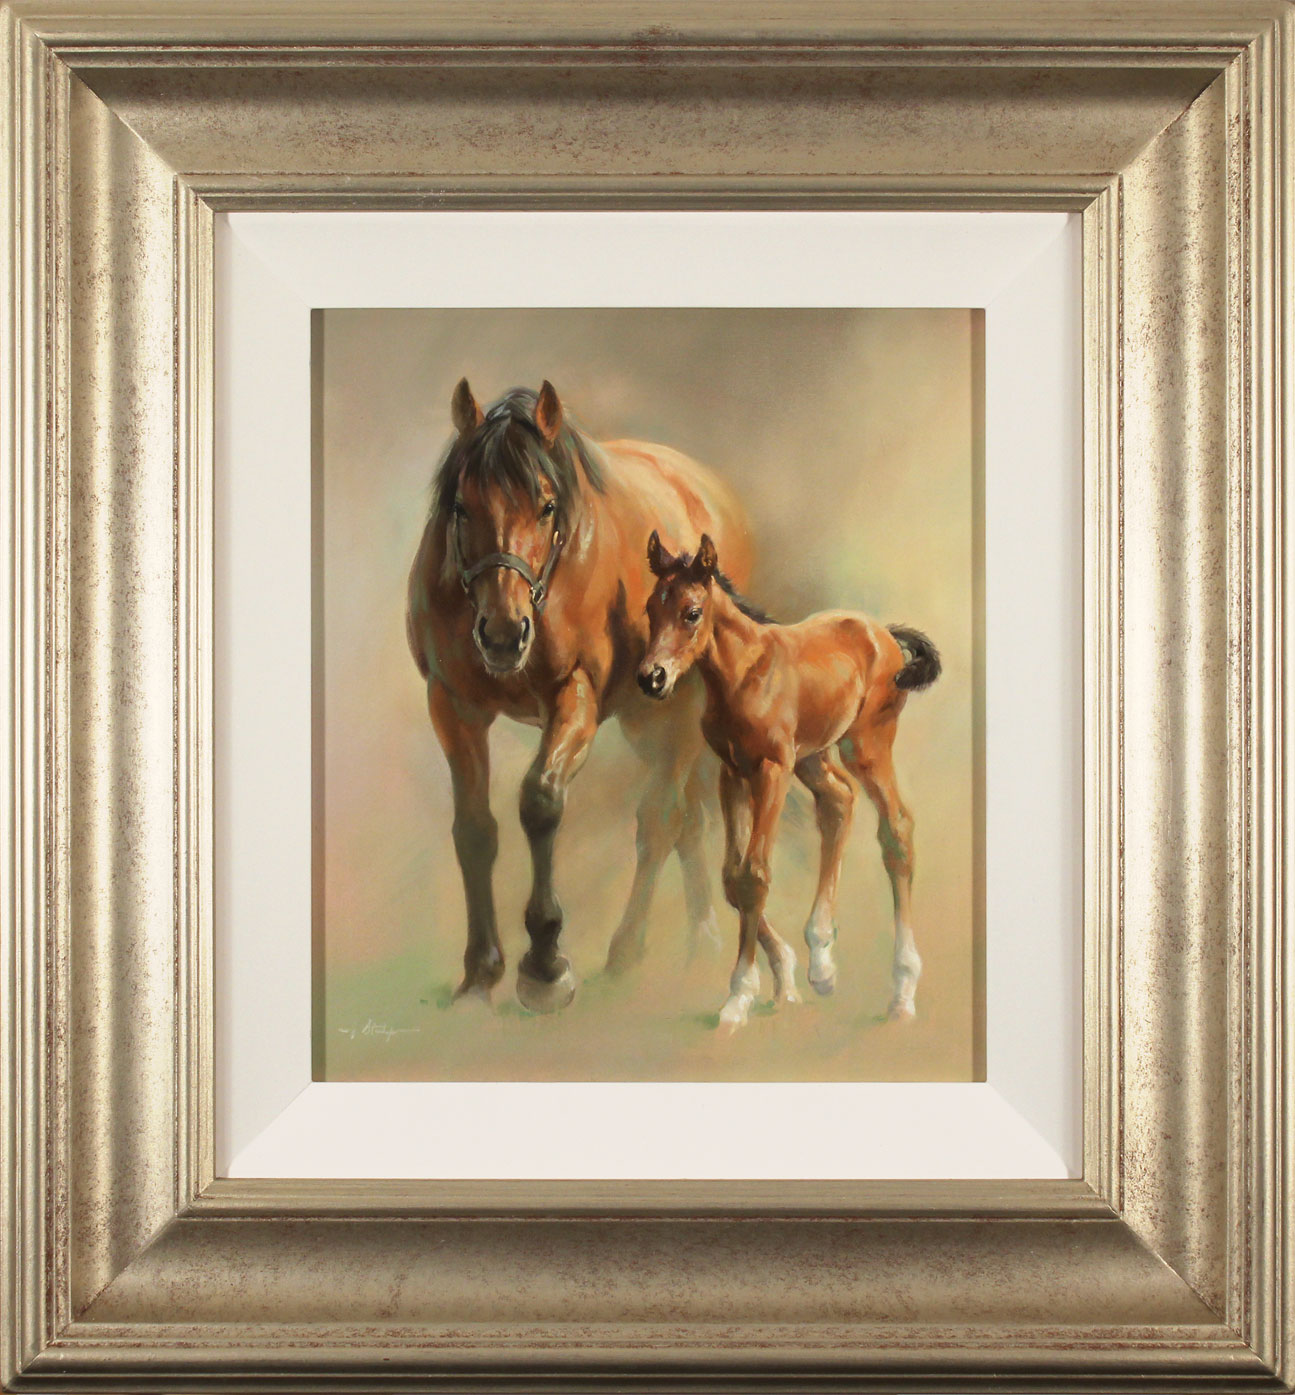 Jacqueline Stanhope, Original oil painting on canvas, An Unbreakable Bond, click to enlarge